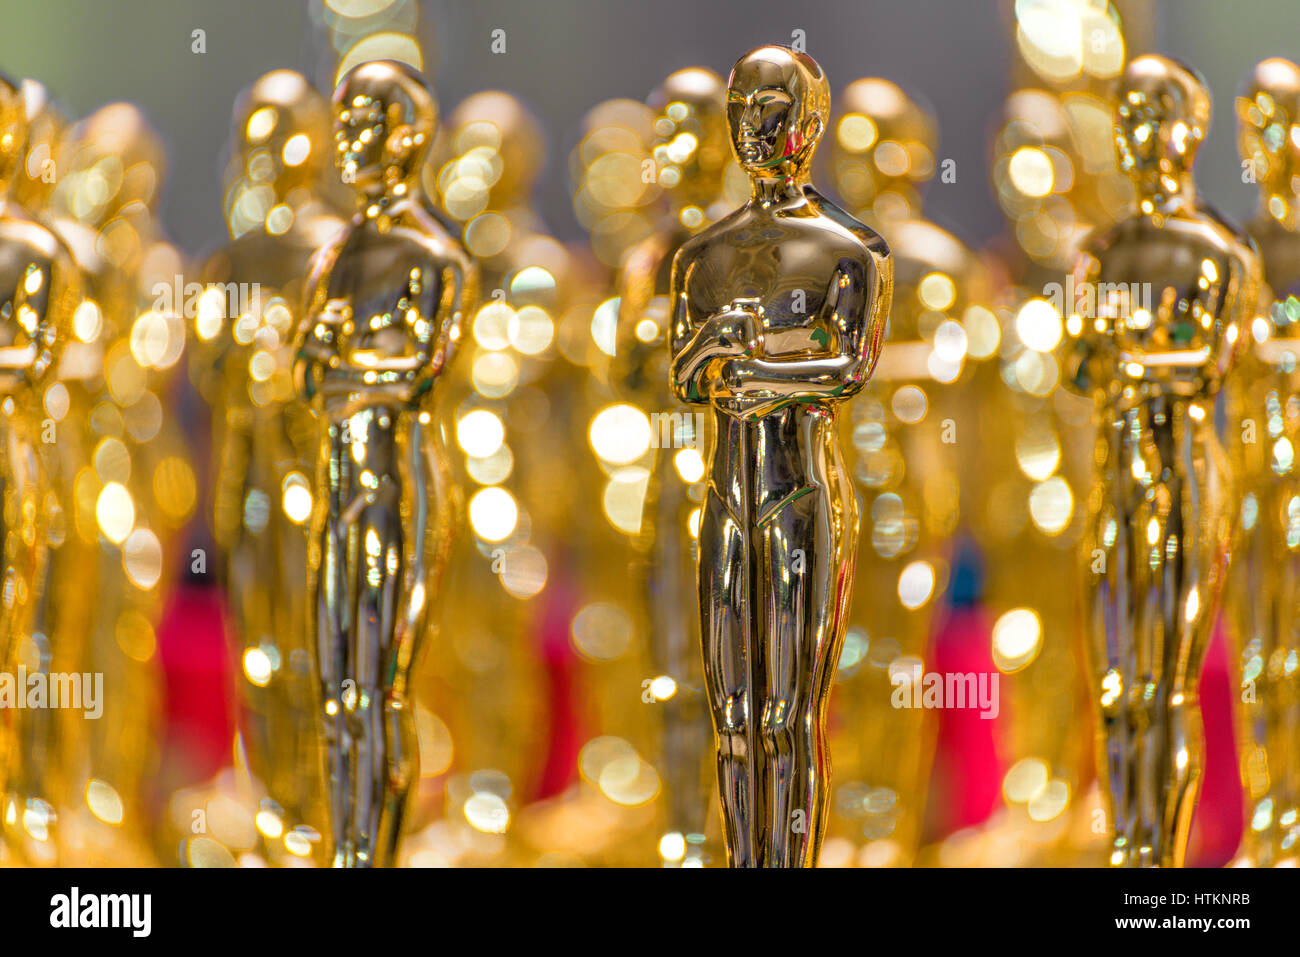 Group of Shiny Golden Trophies - Stock Image